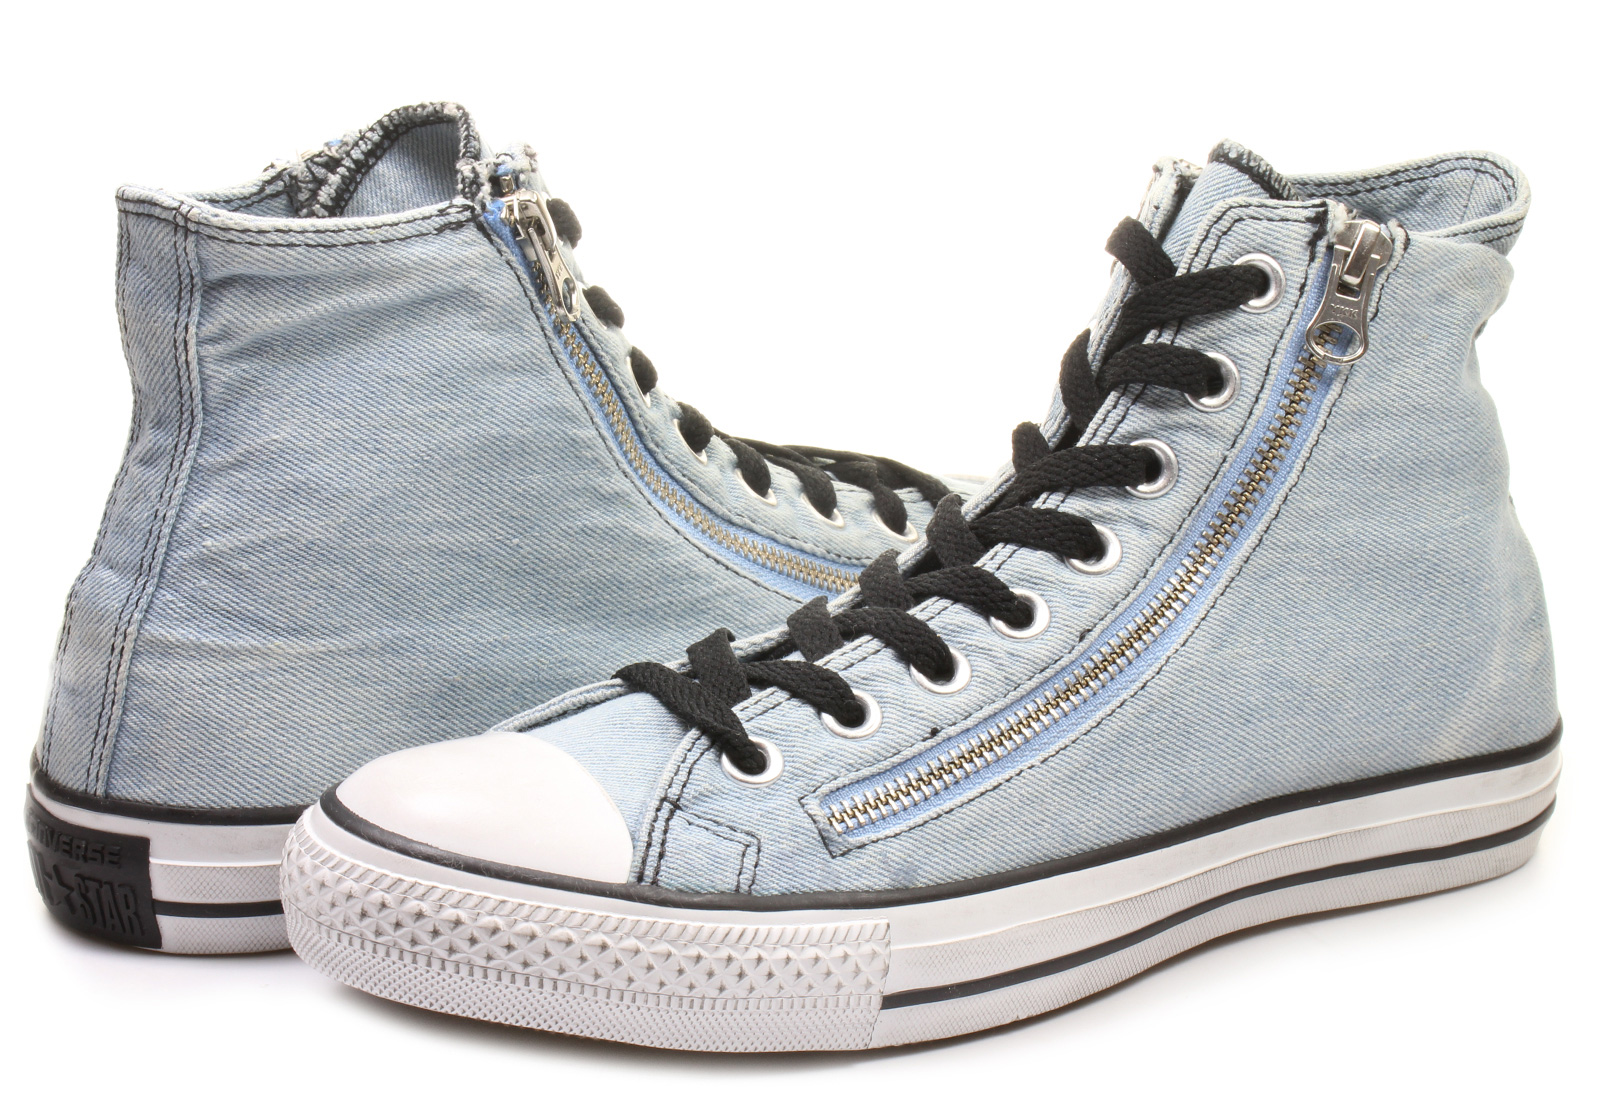 2converse all star zip